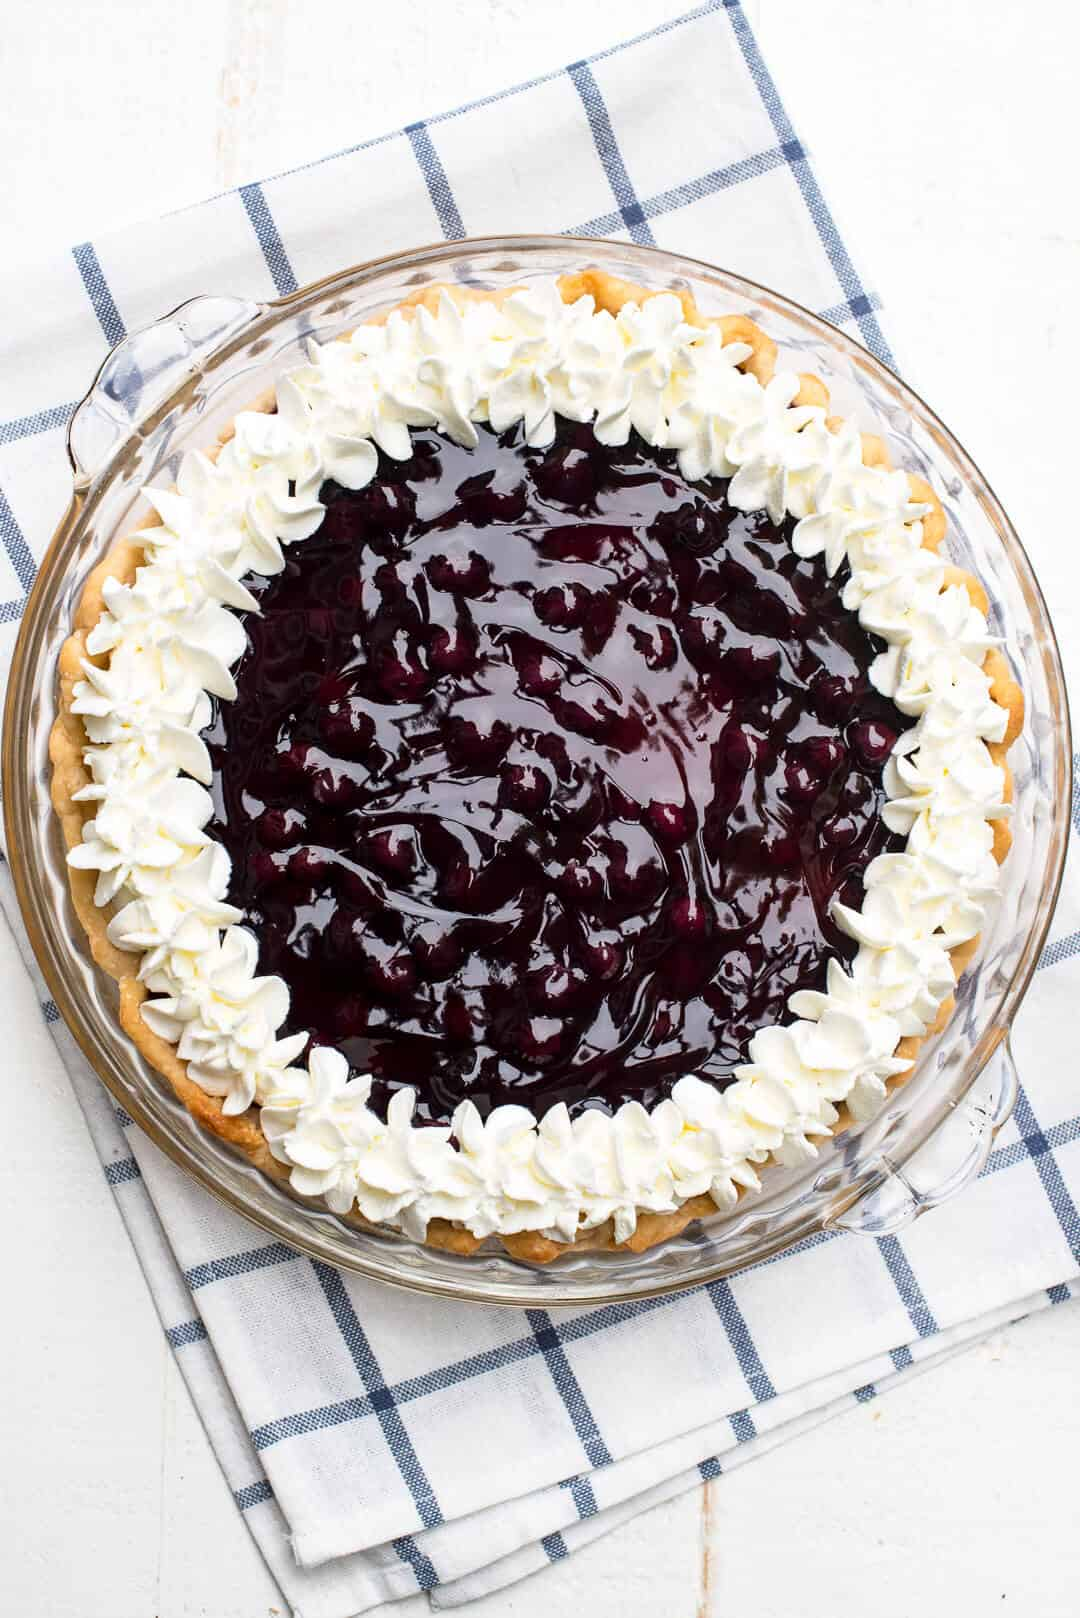 The filling in this Blueberry Lemon Sour Cream Pie is absolutely heavenly. A creamy, totally luscious summer dessert.